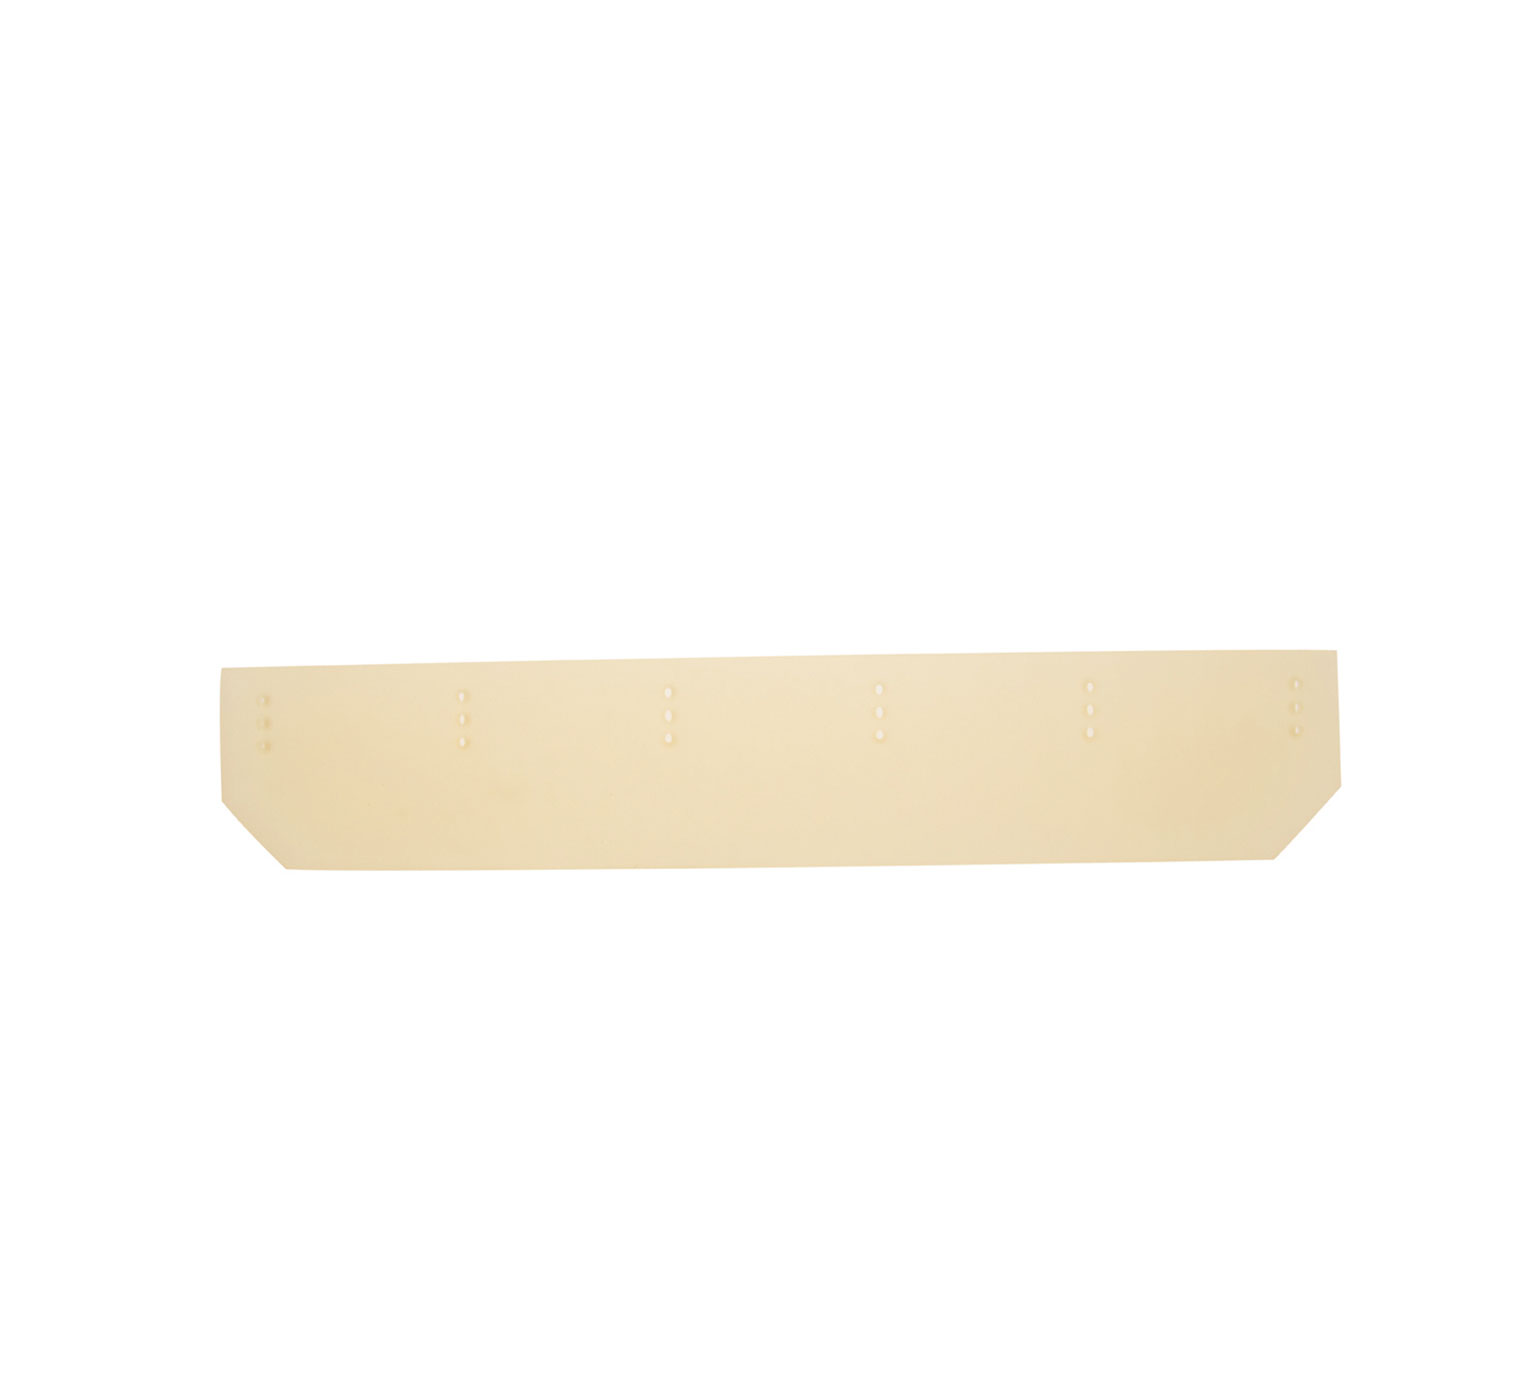 1059091 Polyurethane Side Squeegee – 24.2 in alt 1